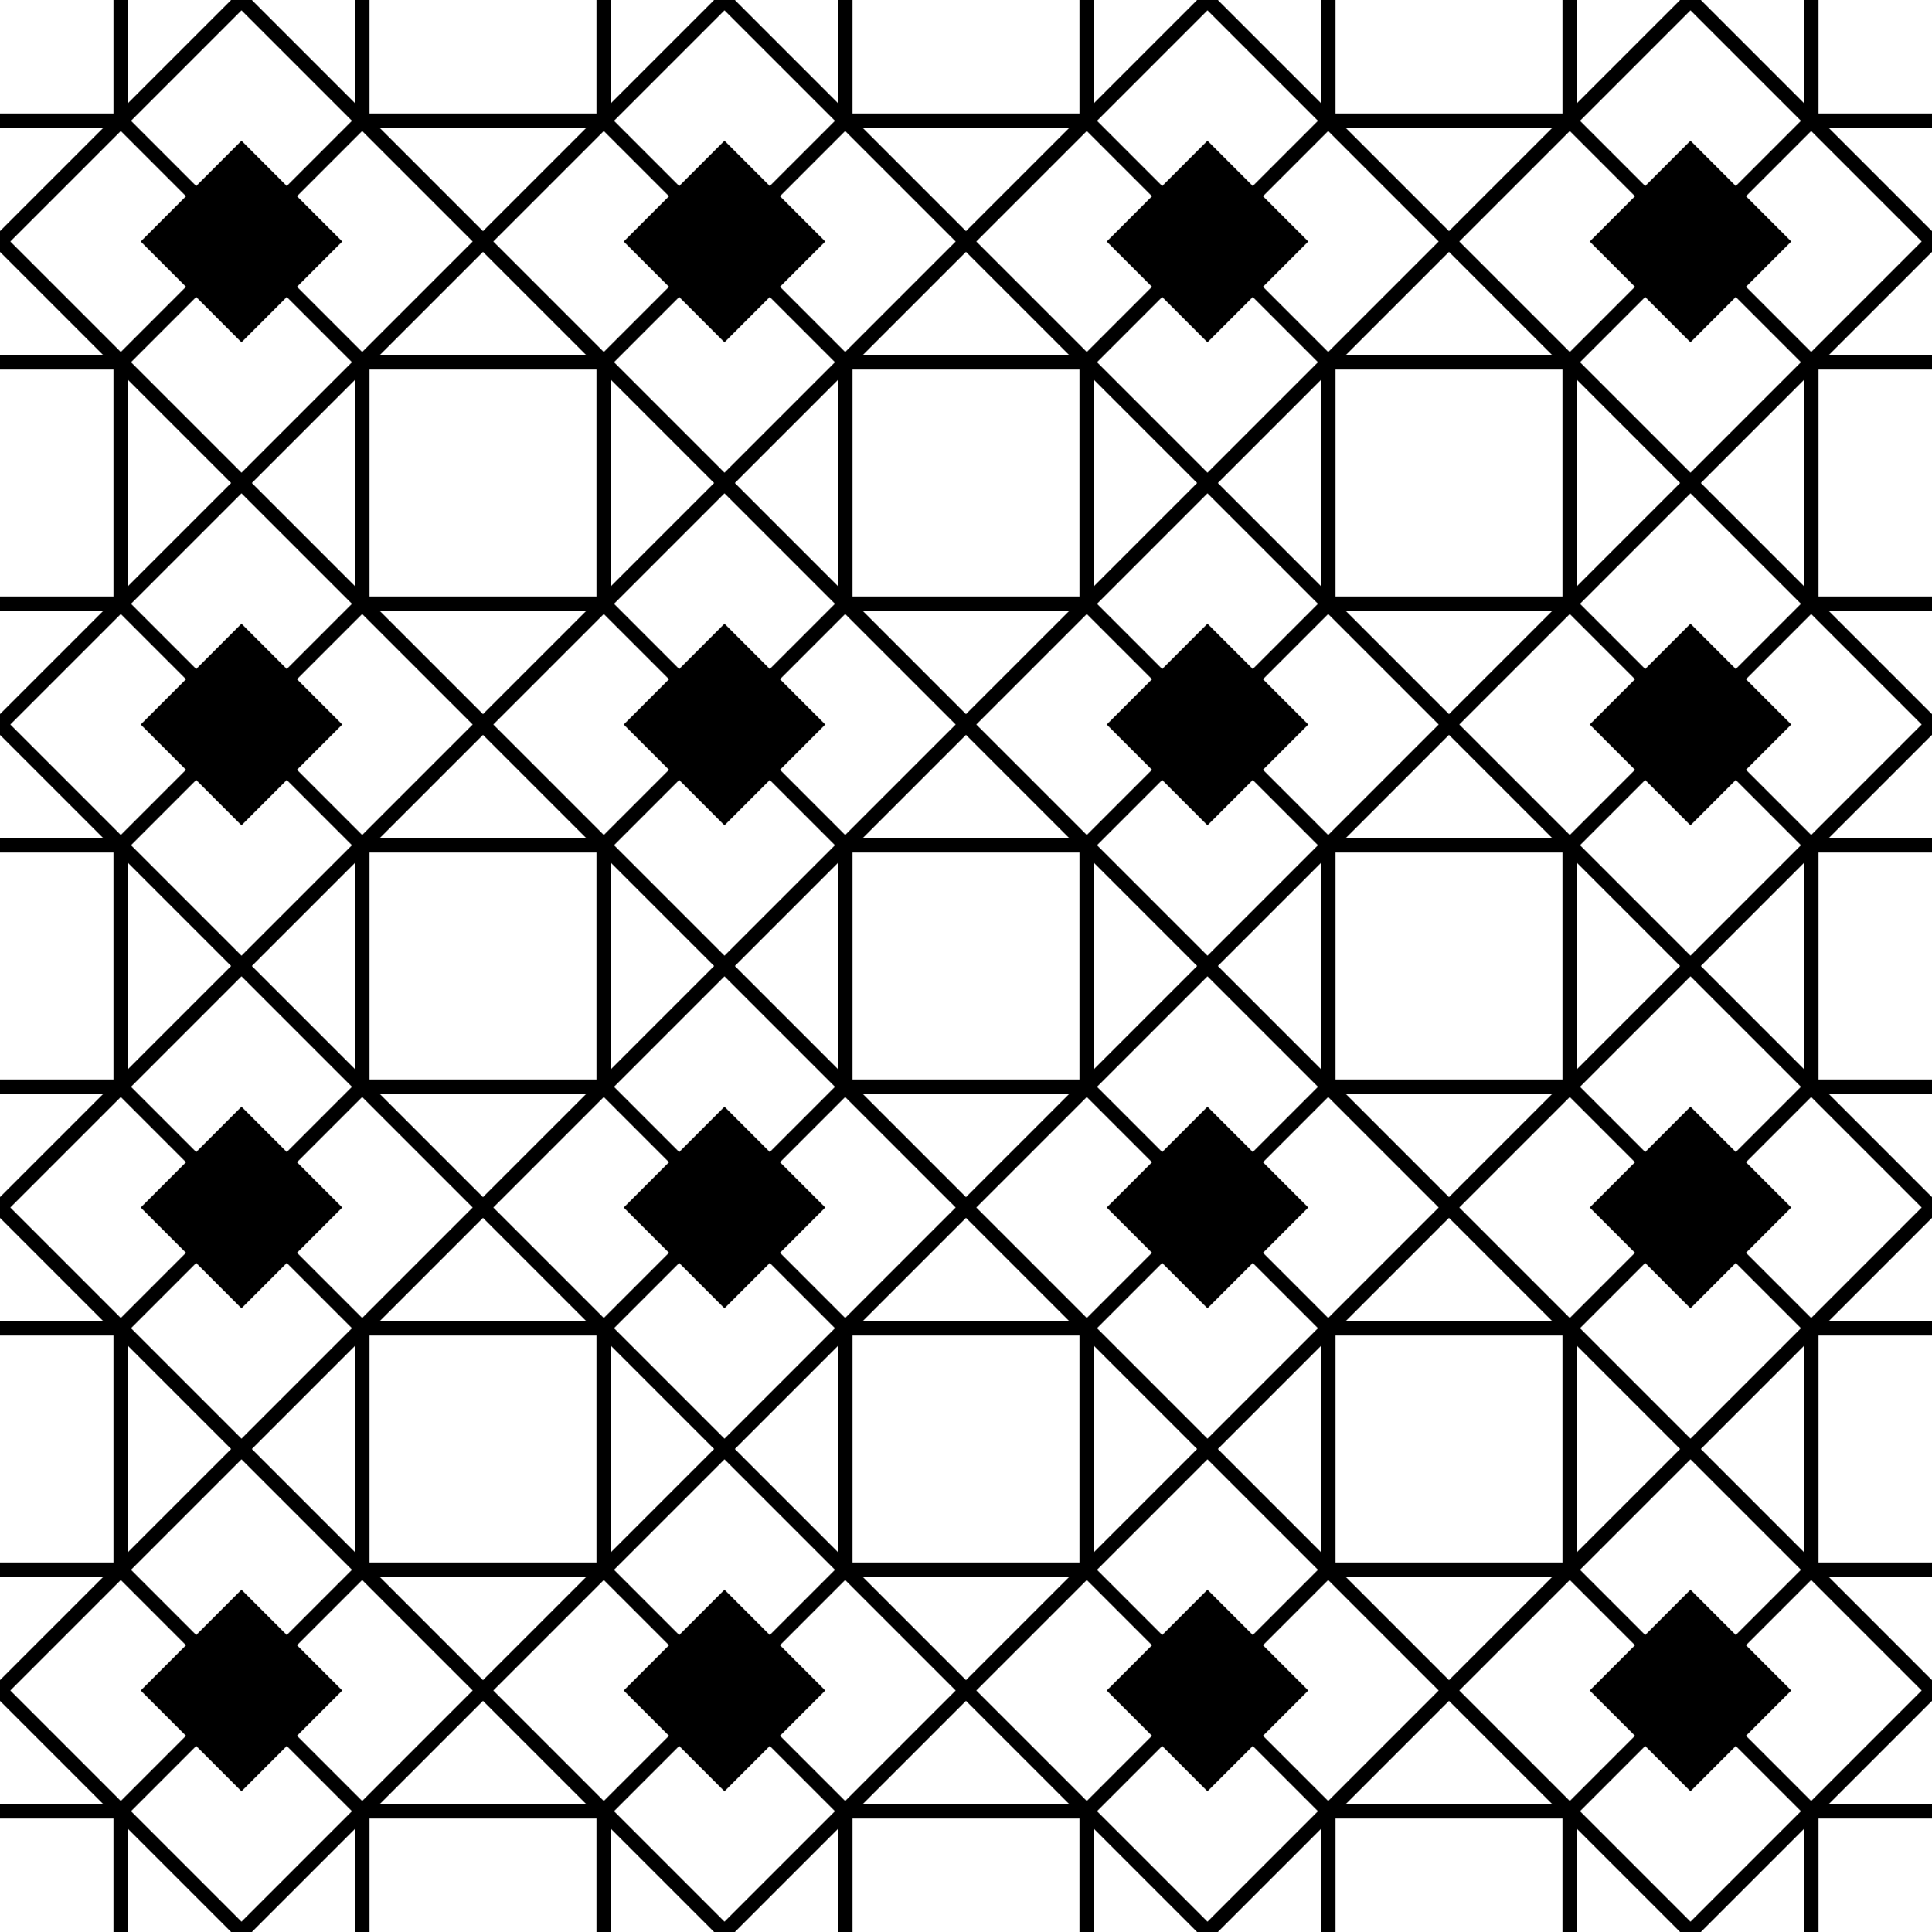 BYC_TILE_GEO_09.png